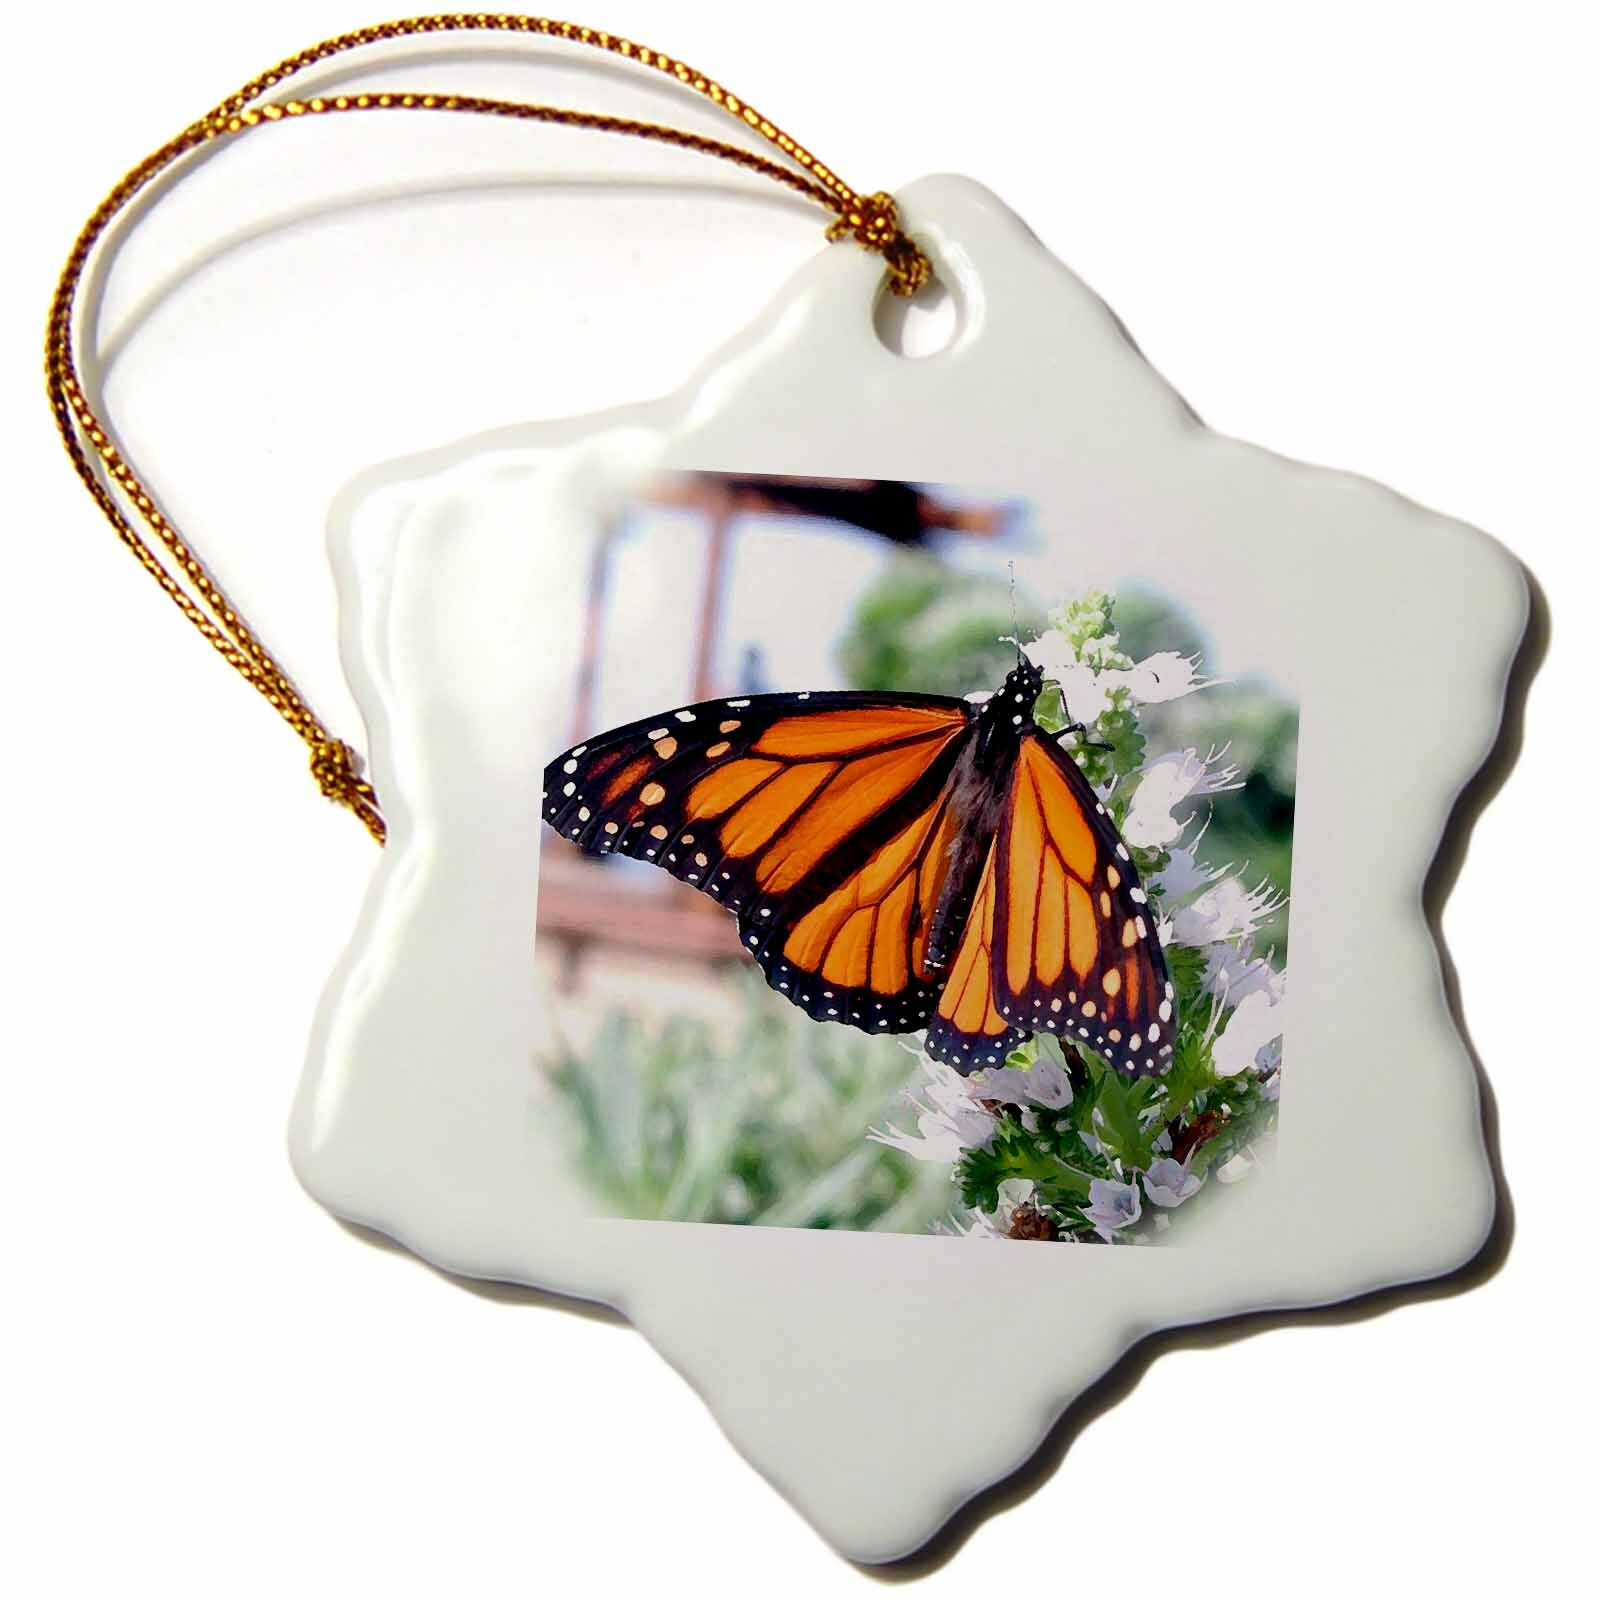 The Holiday Aisle Monarch Butterfly Holiday Shaped Ornament Wayfair